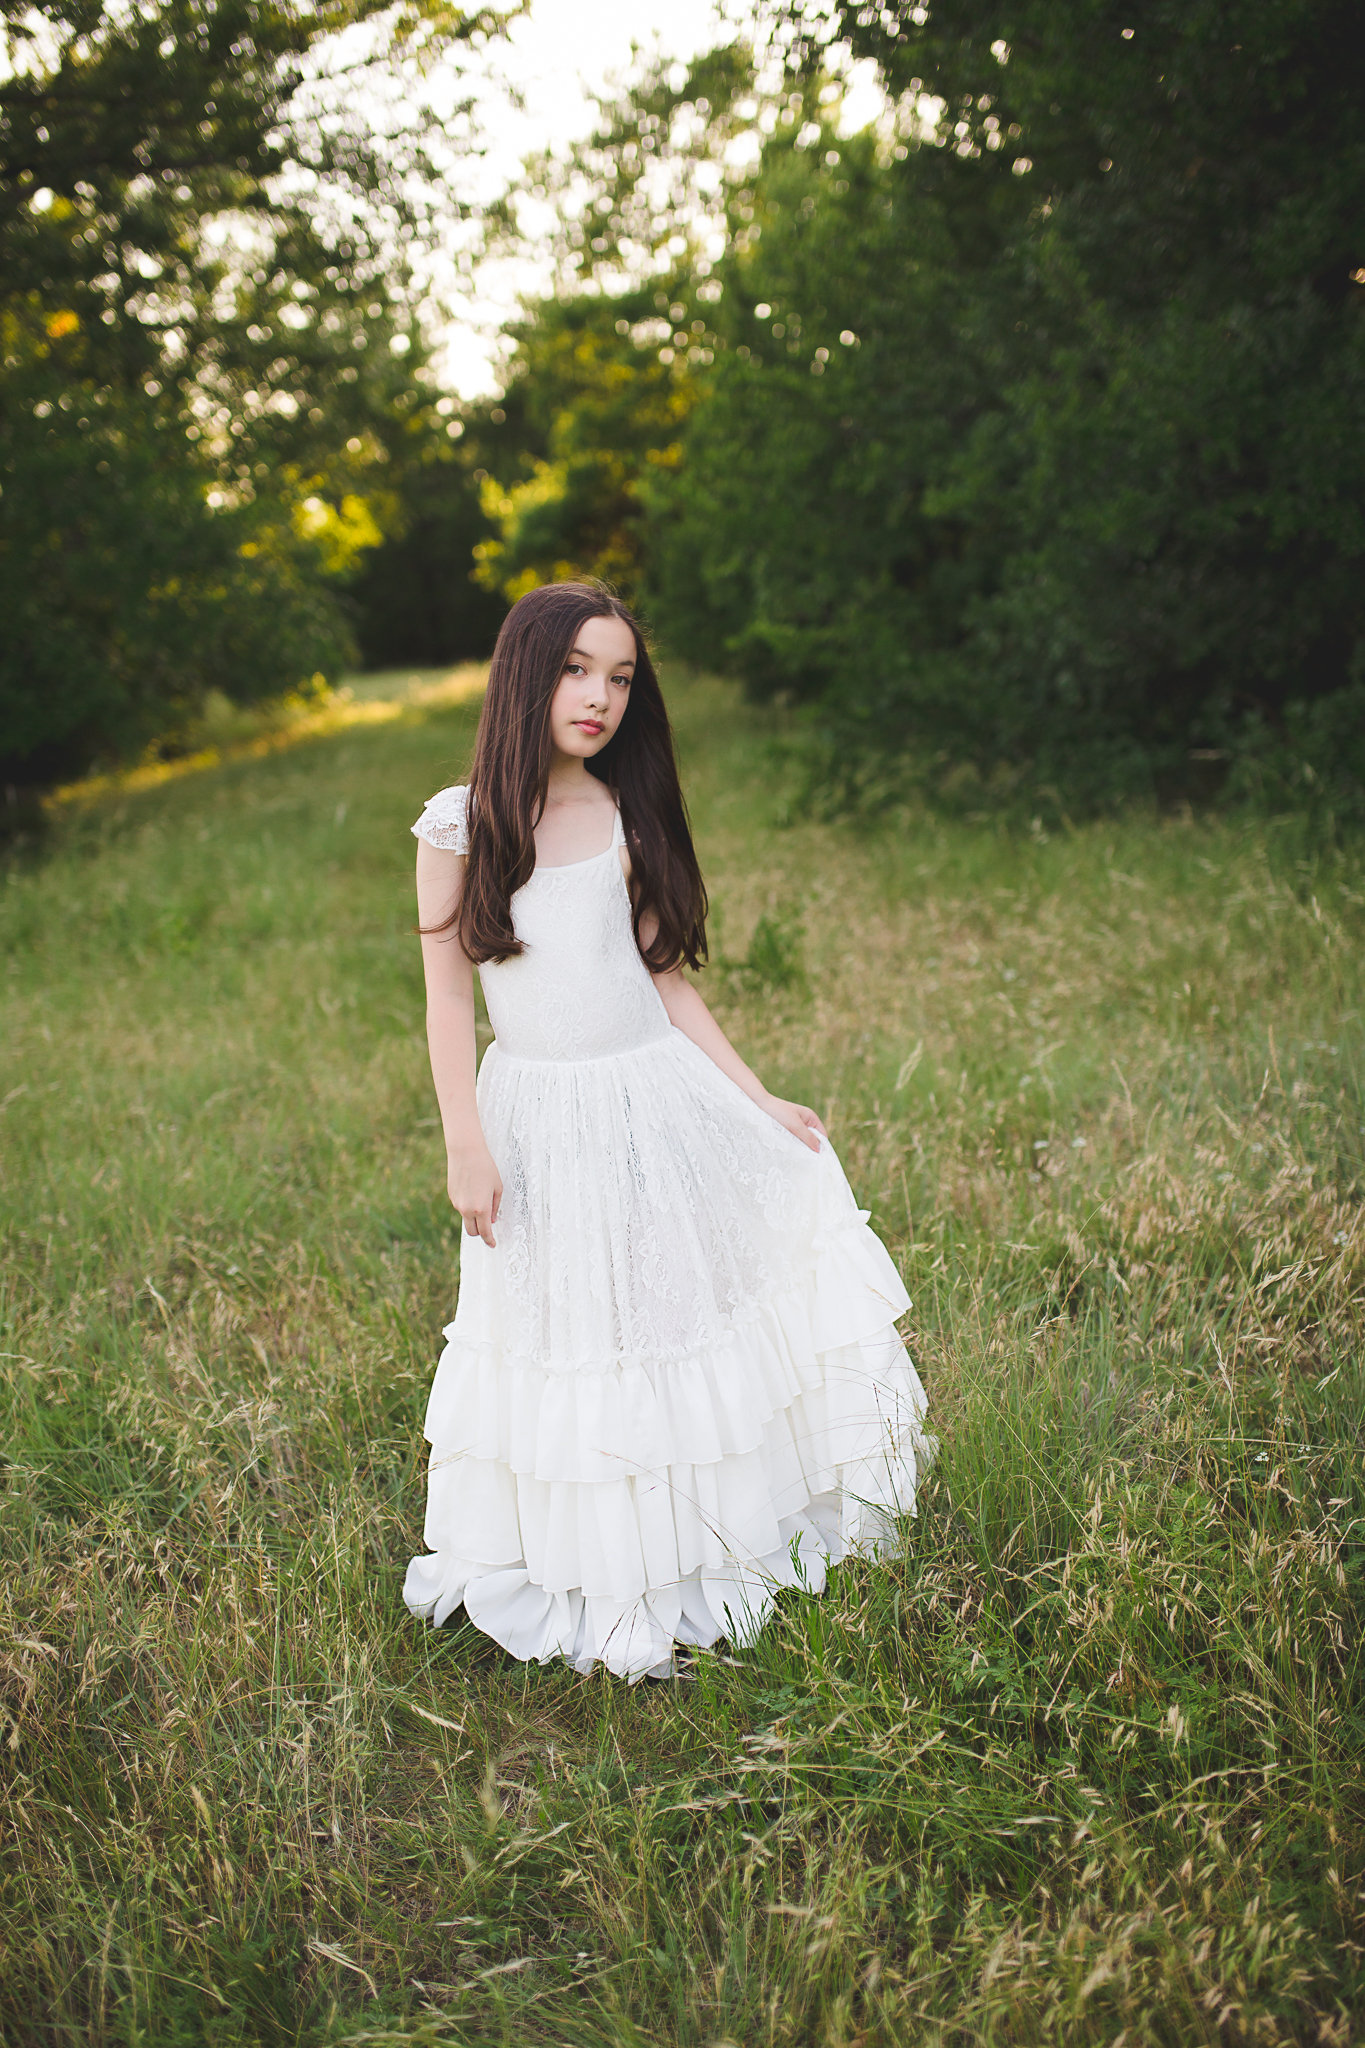 Bohemian Beach Flower Girl Lace Dress Ruffle Sleeves Rustic Junior Bridesmaid Full Length.jpg